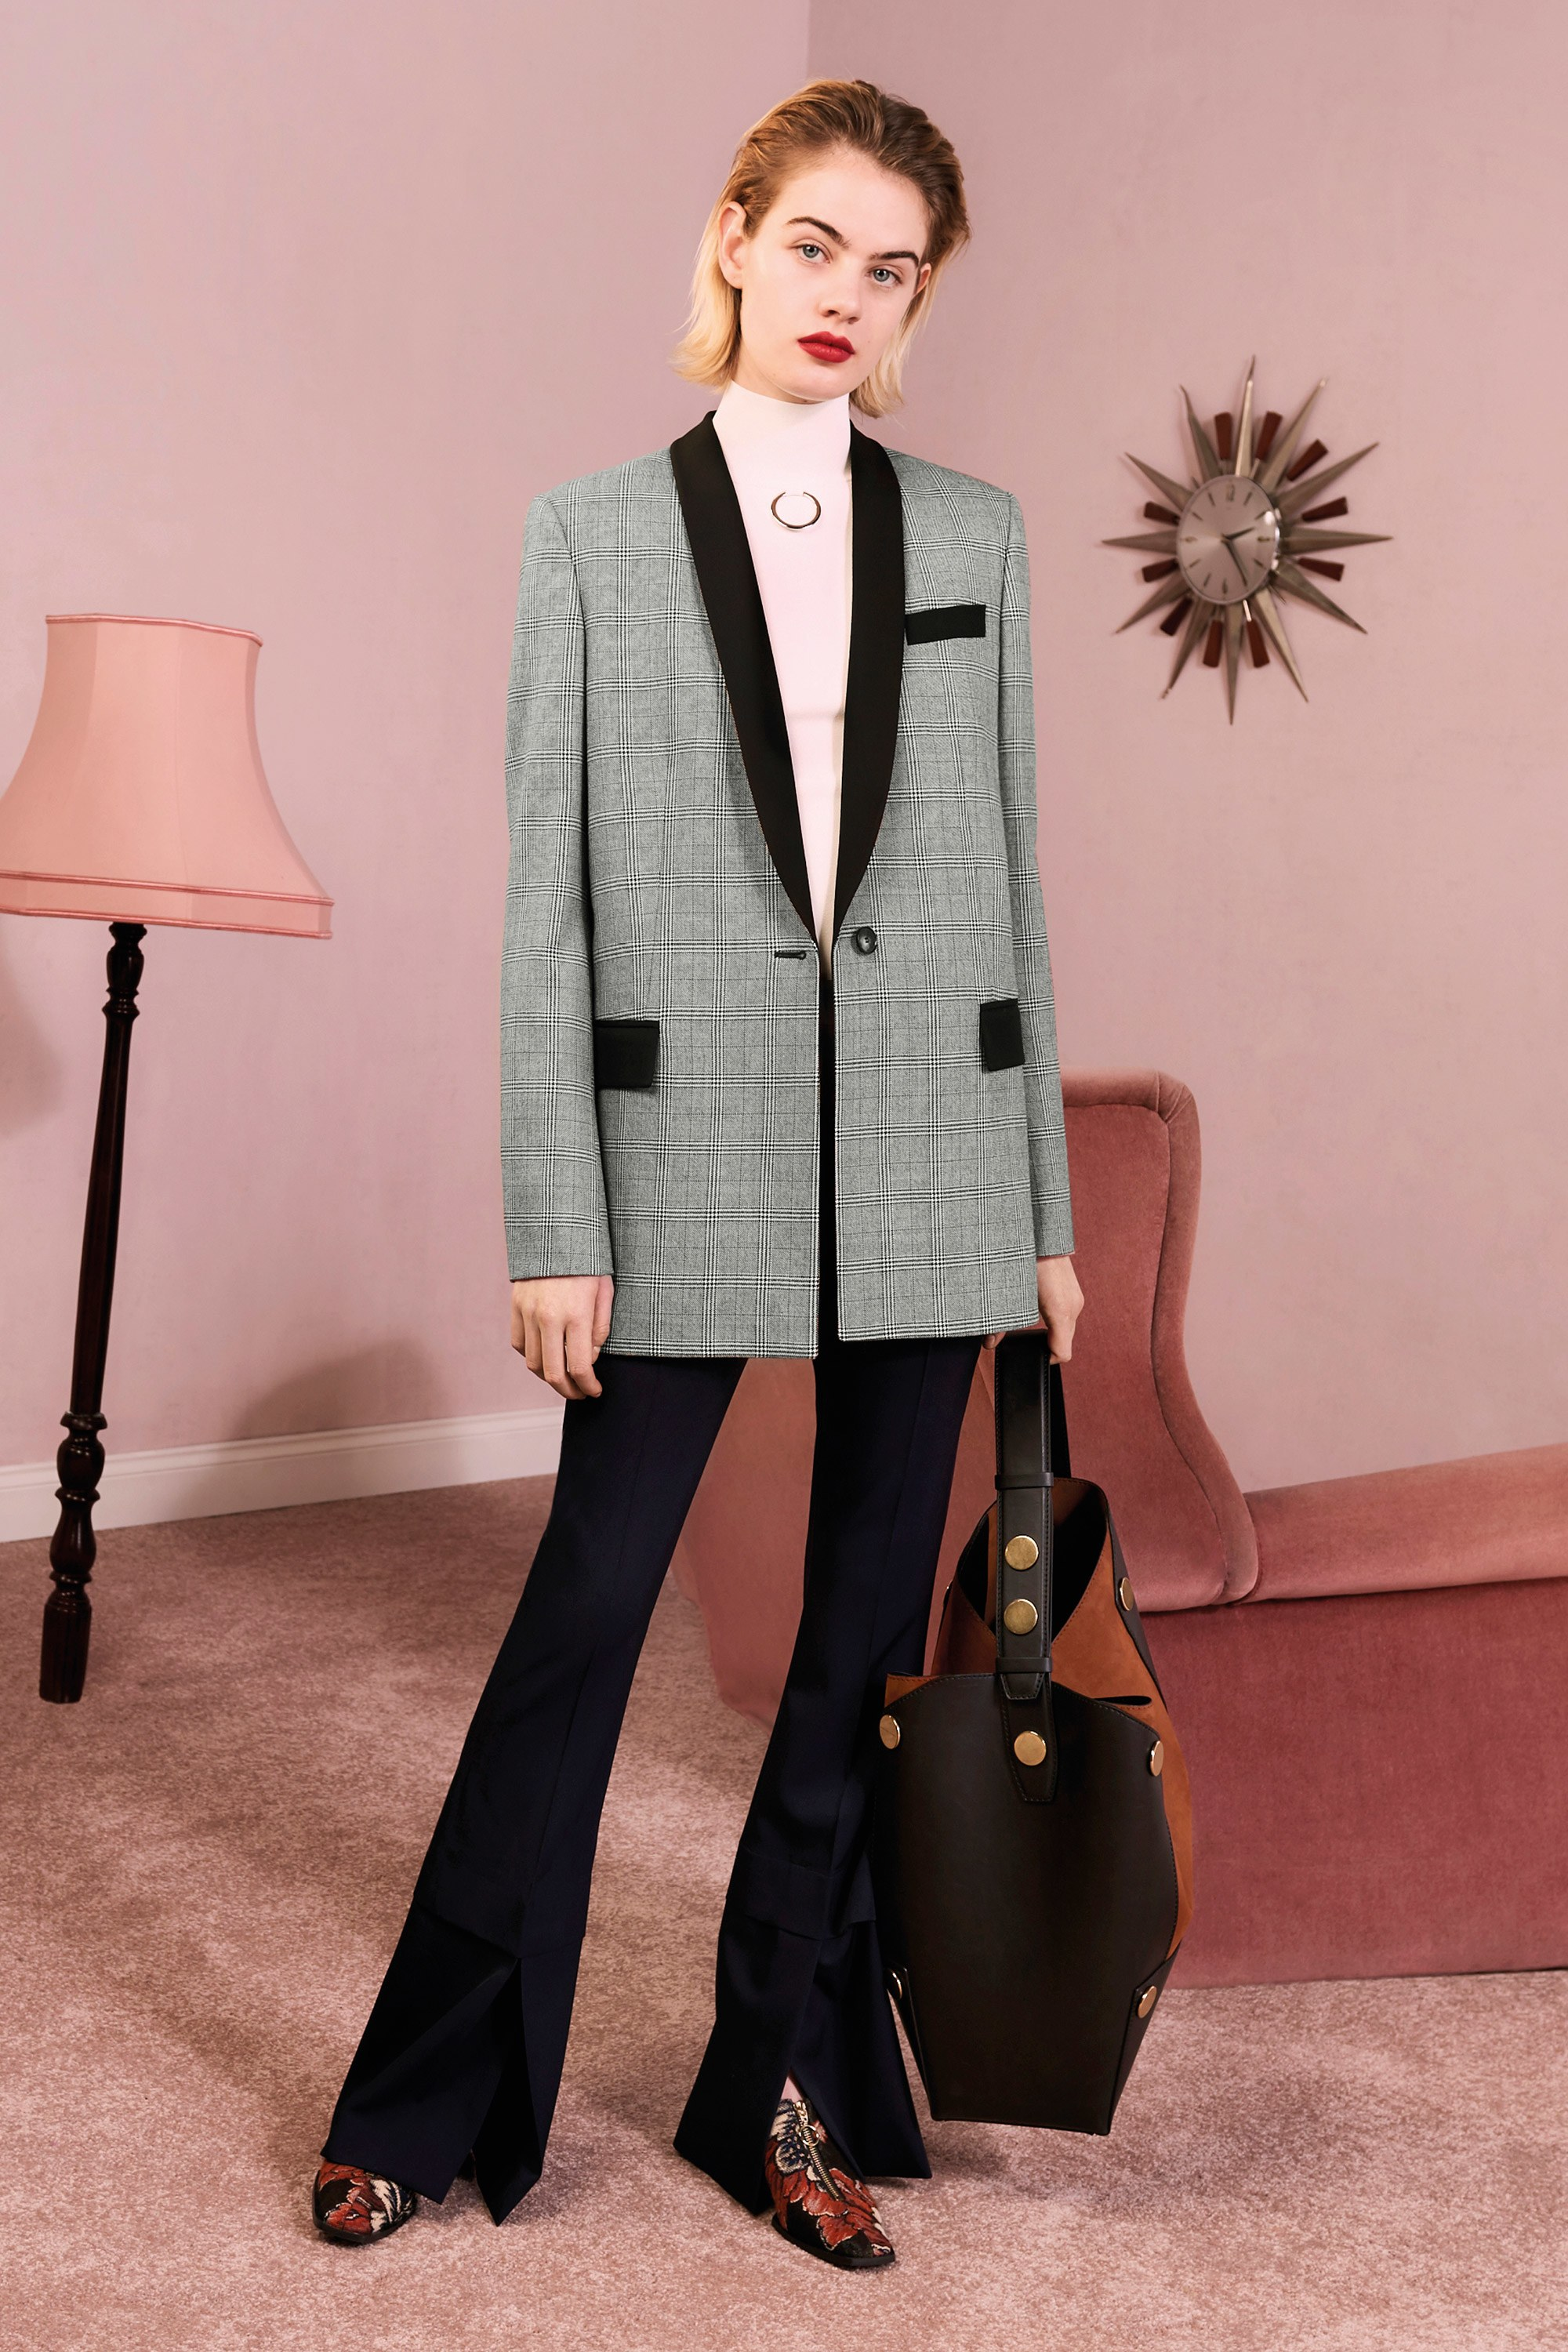 5-stella-mccartney-pre-fall-2017.jpg